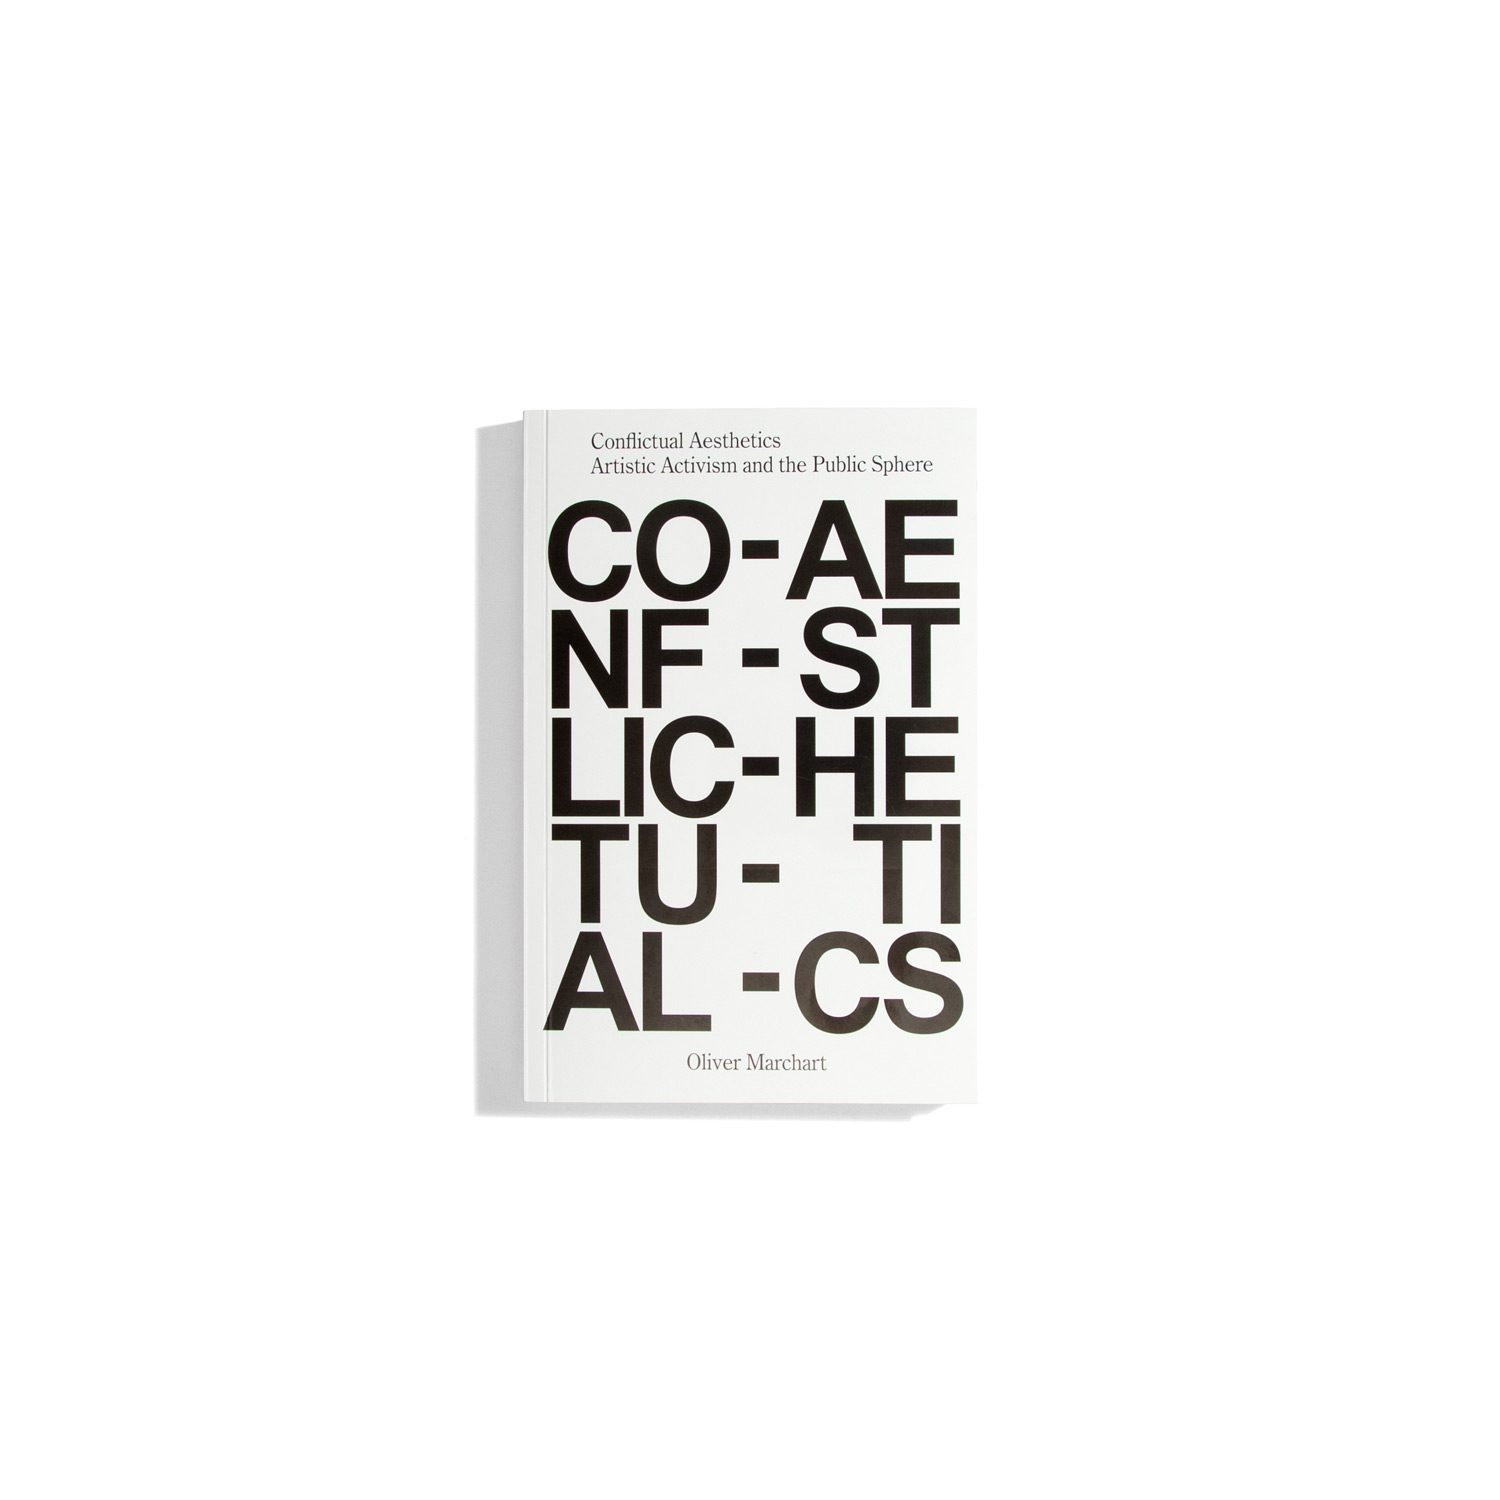 Conflictual Aesthetics - Oliver Marchart